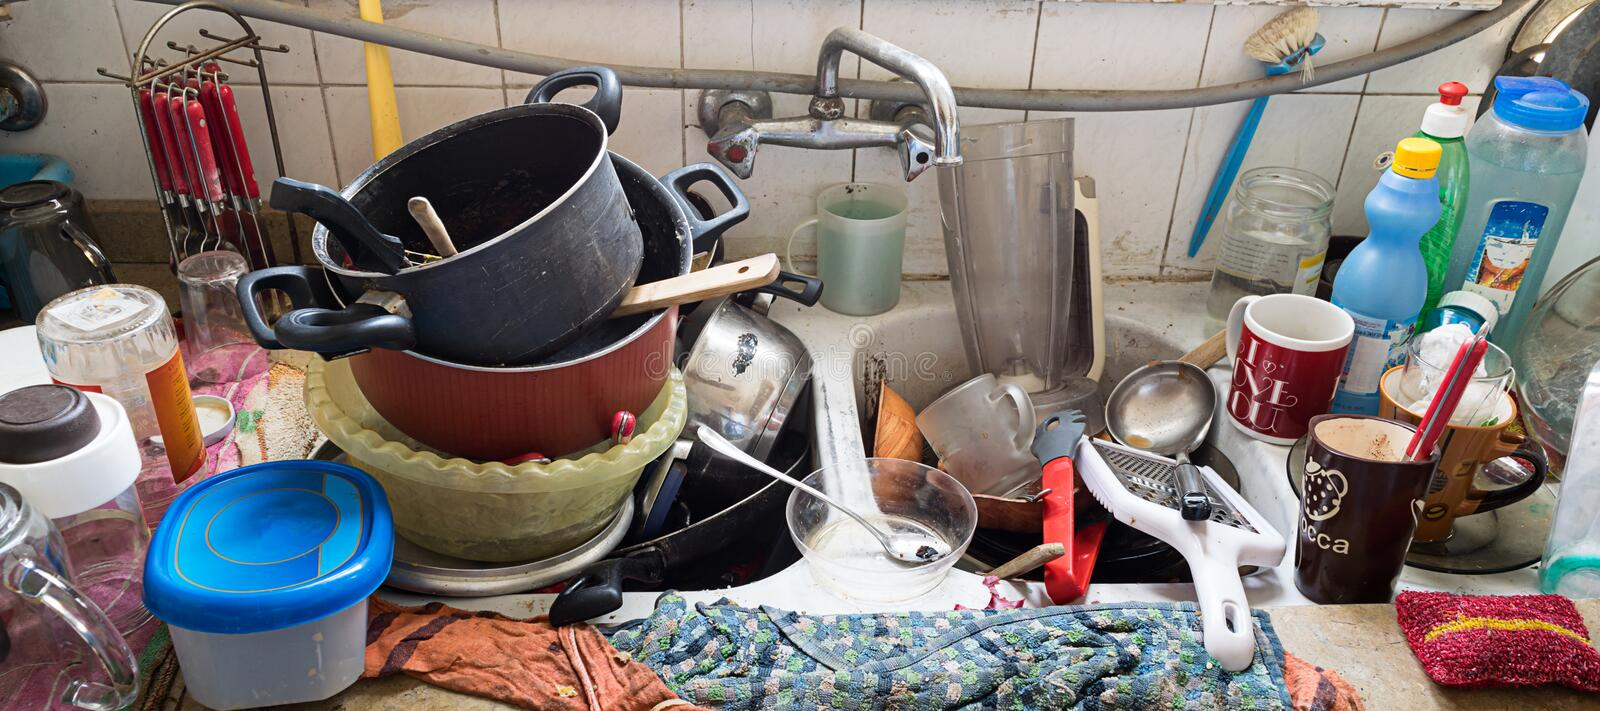 Messy Dirty Kitchen royalty free stock photography